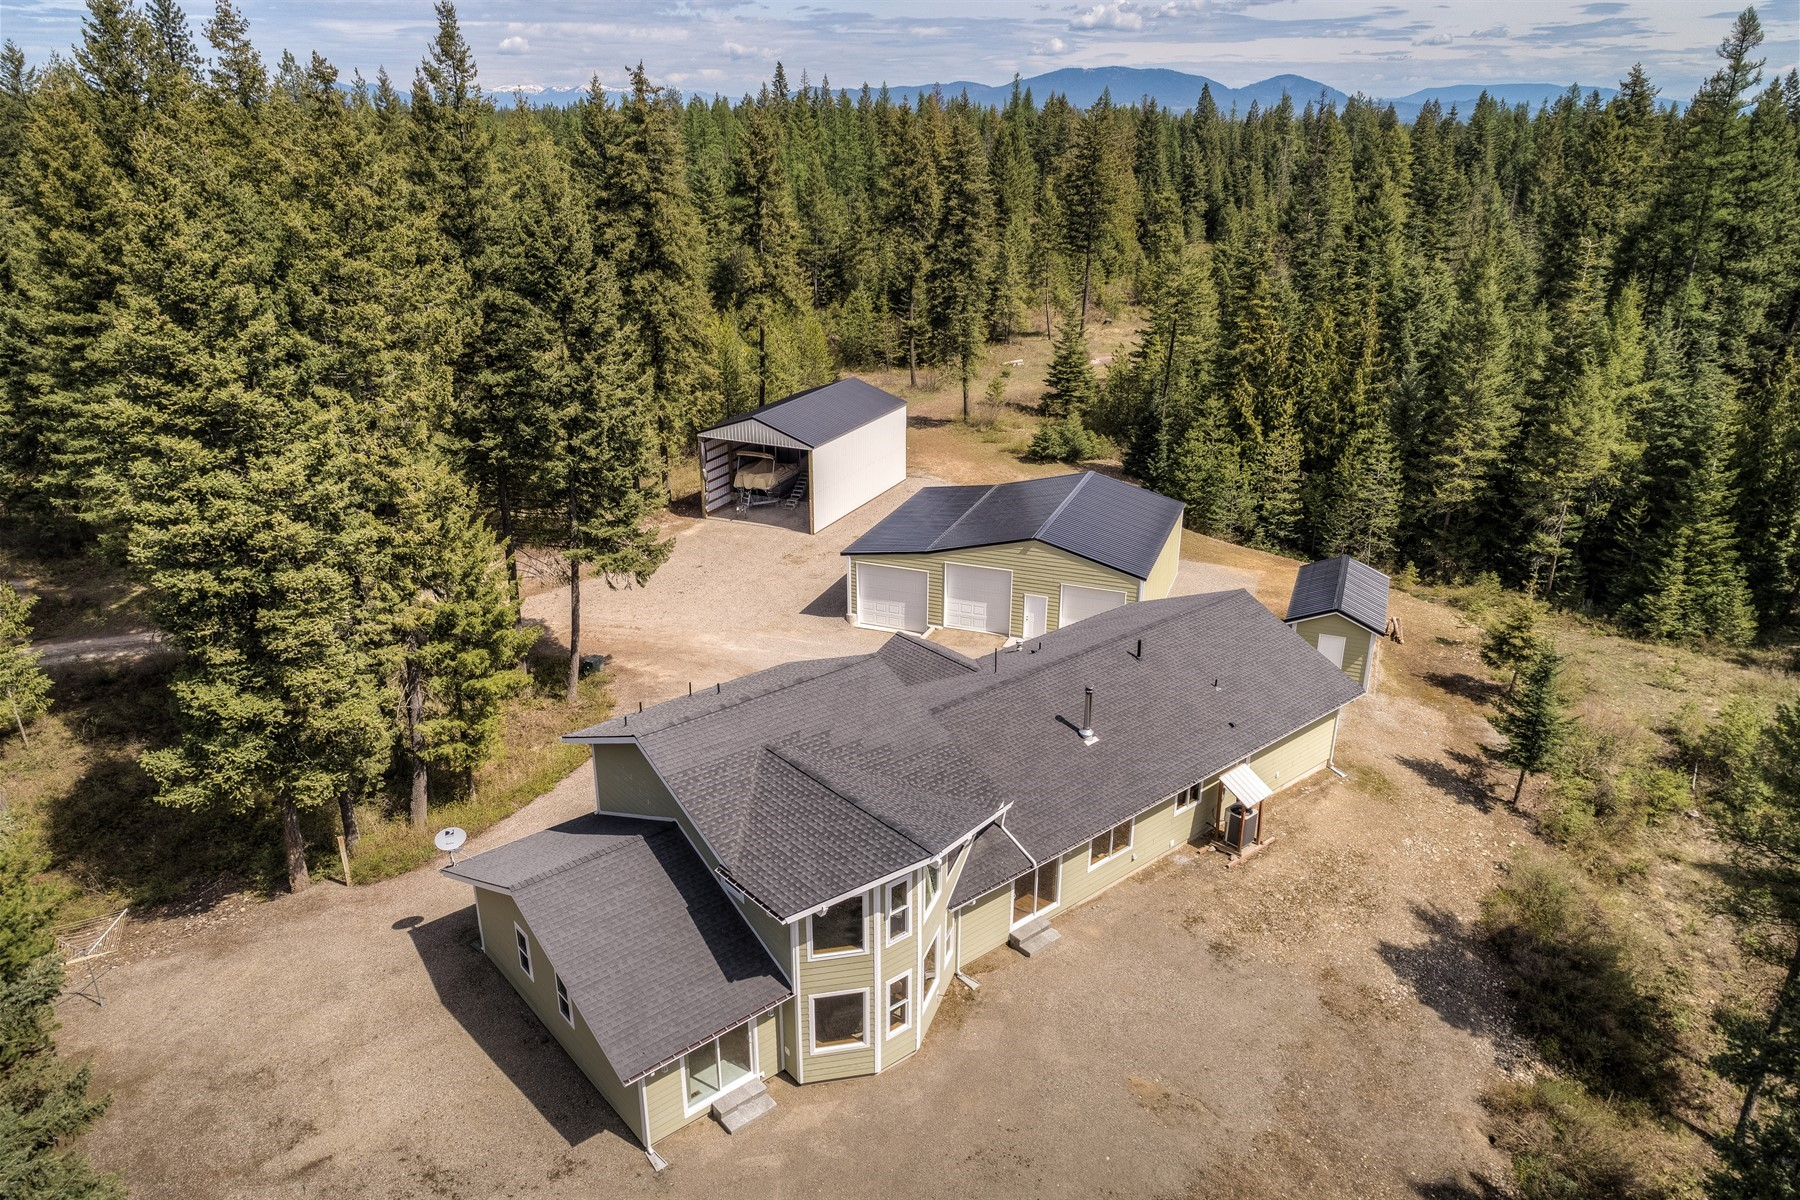 Single Family Home for Active at Completely Updated Home On Over 13 Acres 16444 W Coeur d'Alene Spirit Lake, Idaho 83869 United States